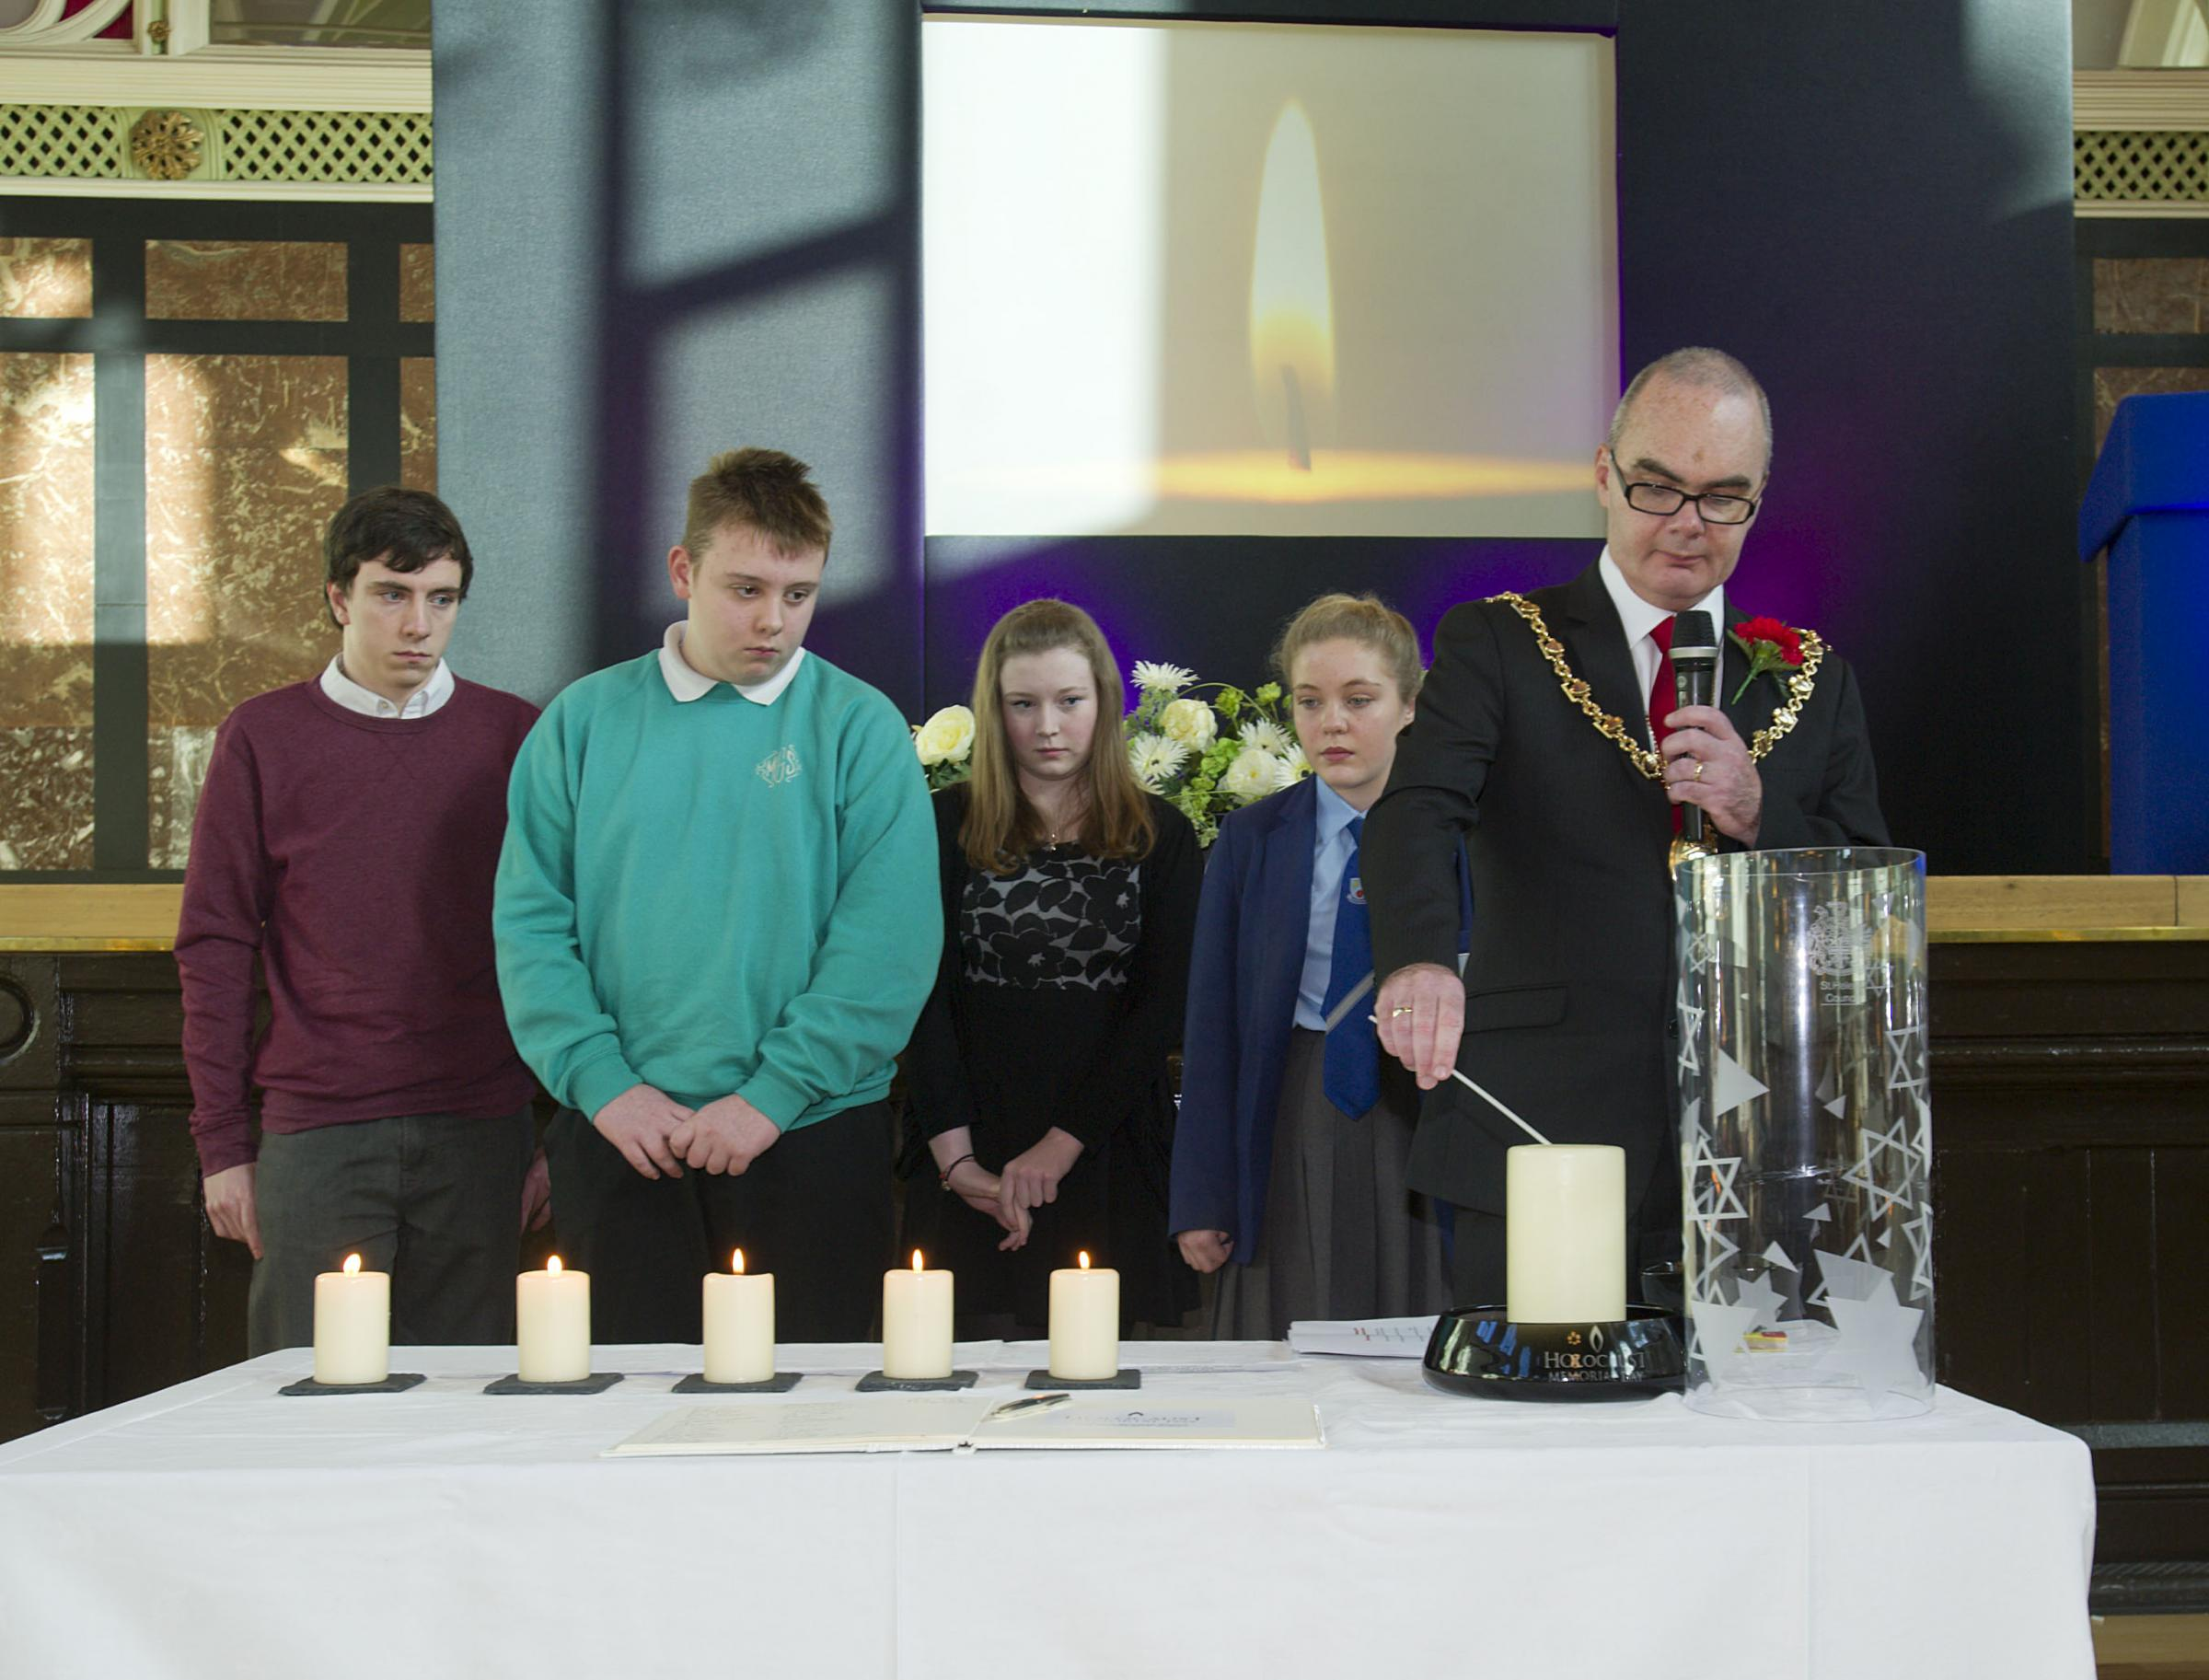 Mayor Cllr Andy Bowden with students at the Holocaust commemoration event at the town hall.